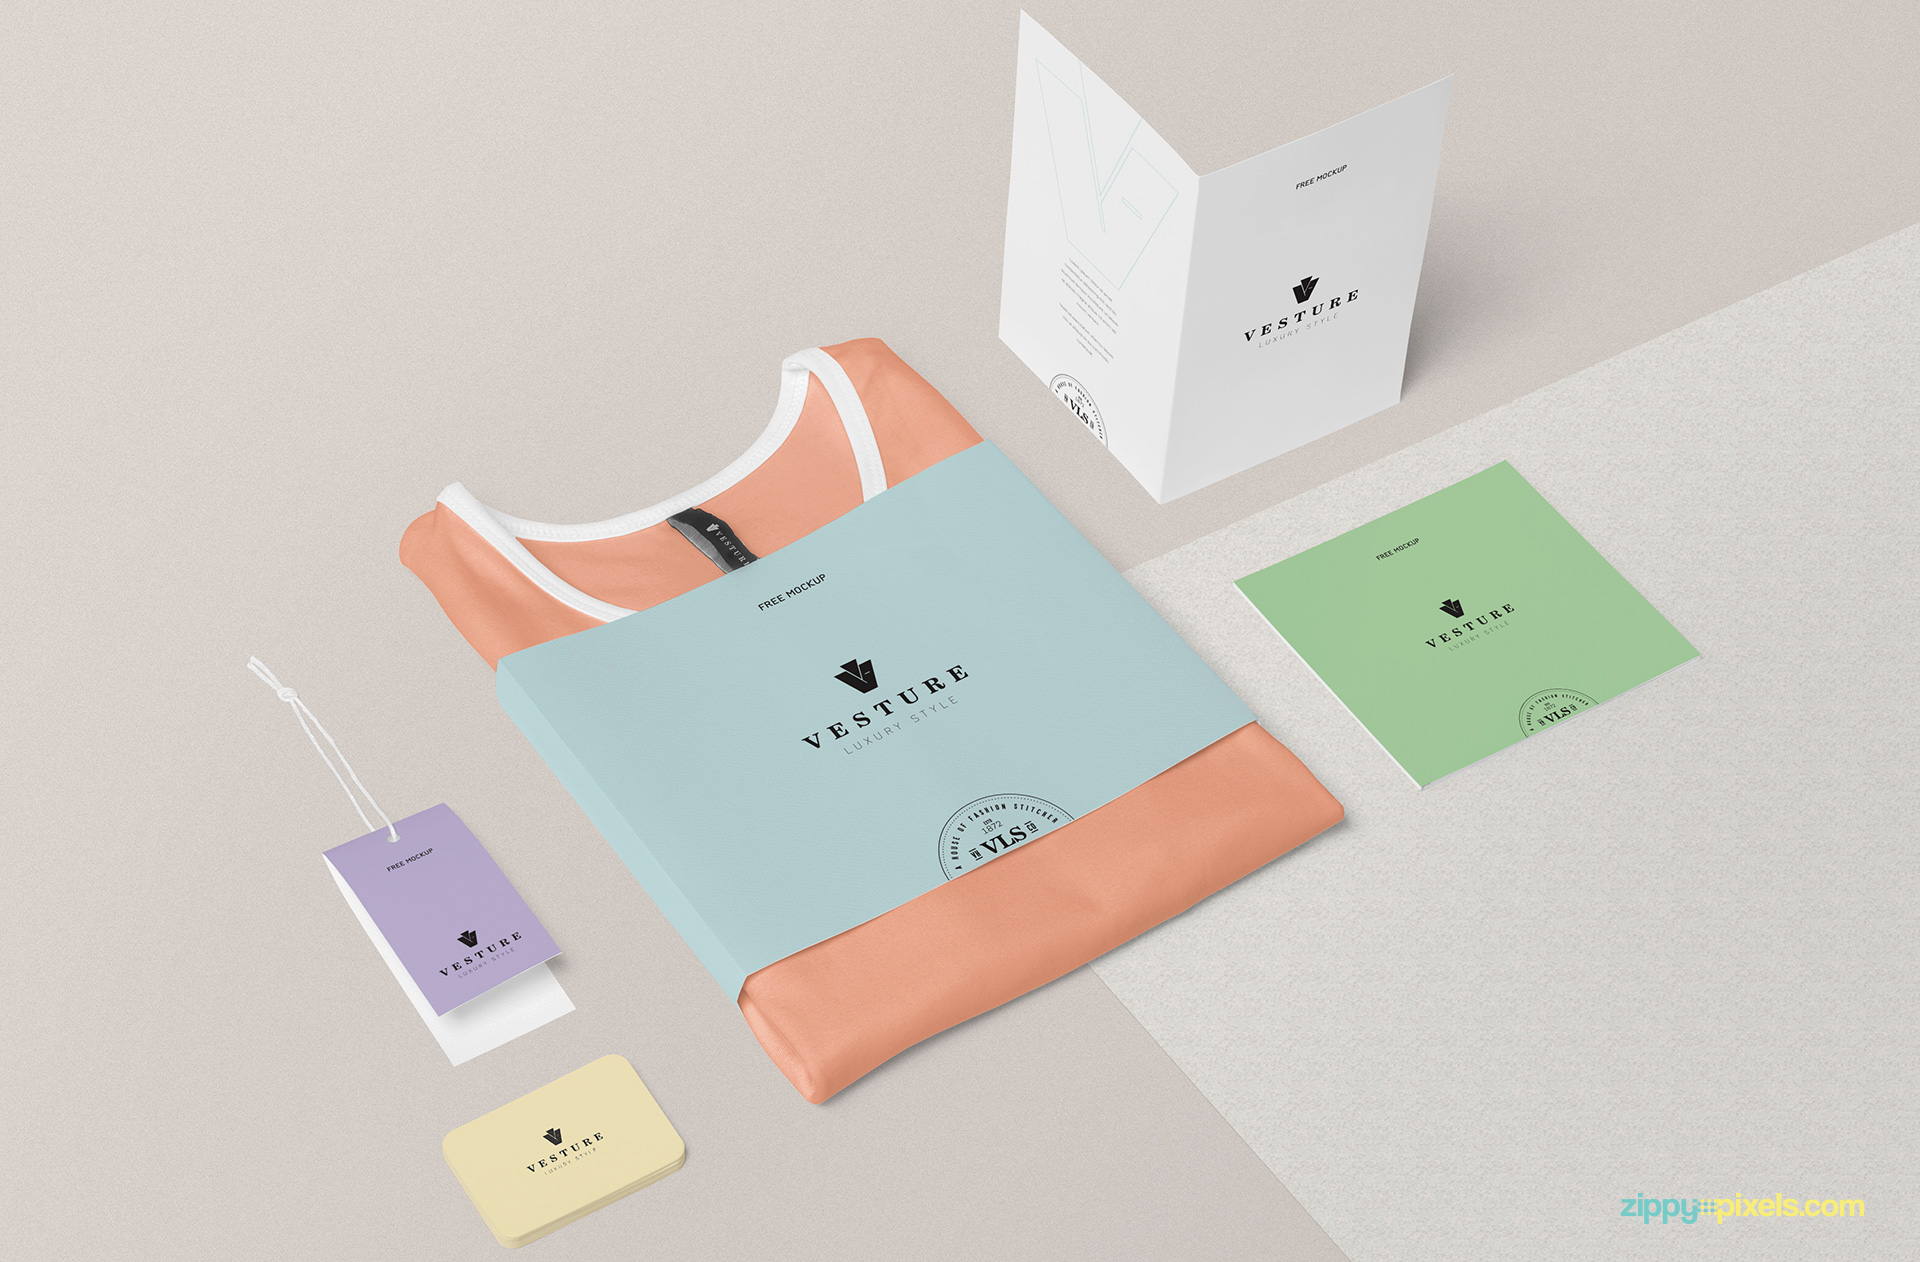 Fully customizable fashion branding mockup.